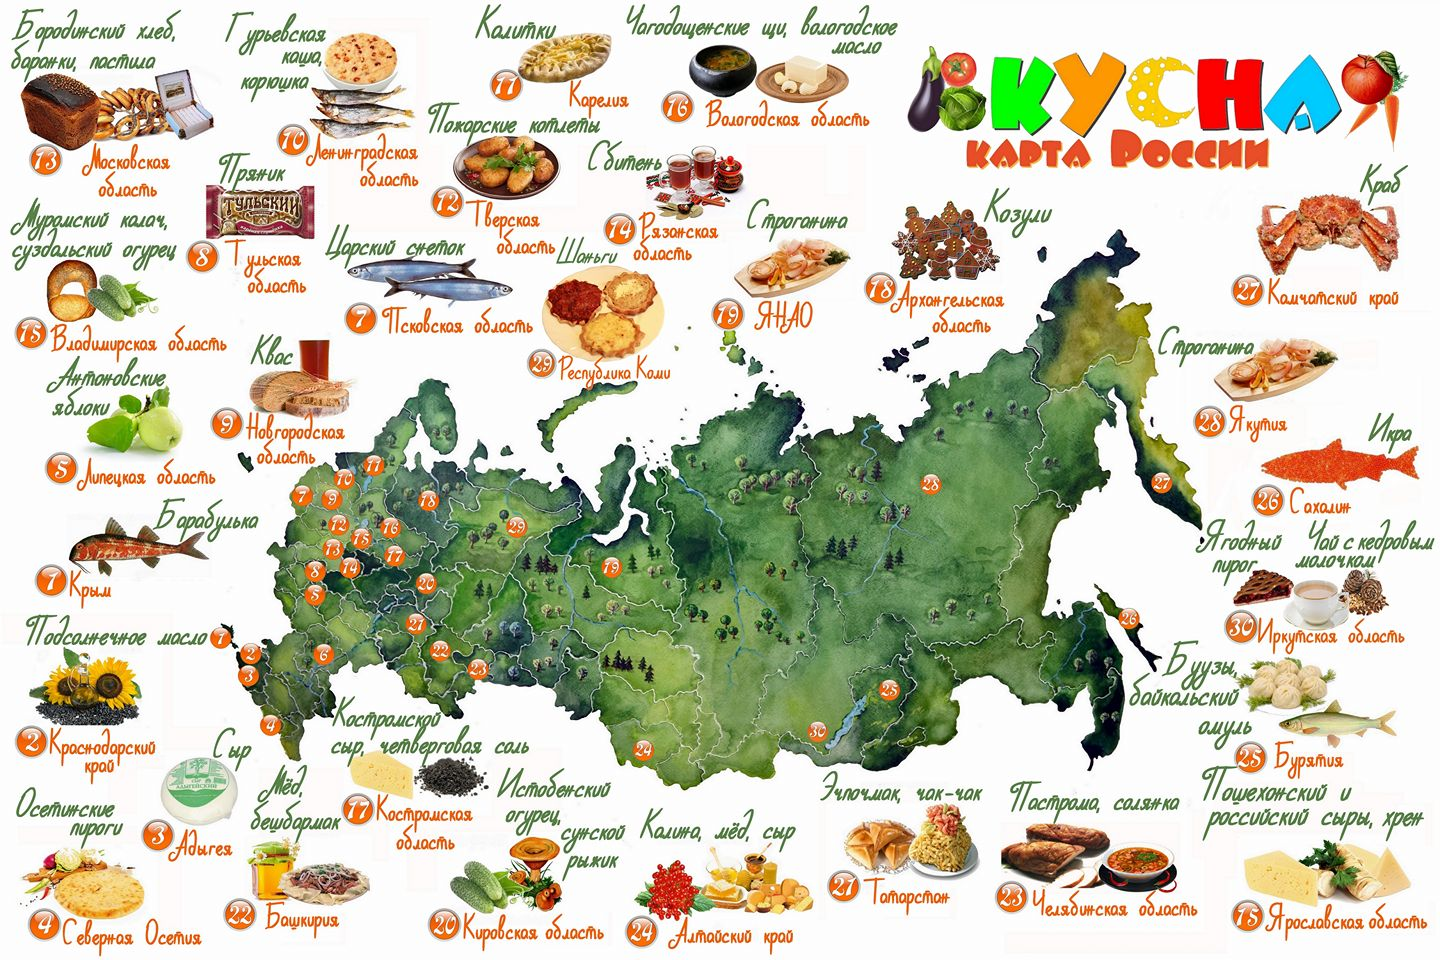 The Tasty Map Of Russia Food Perestroika